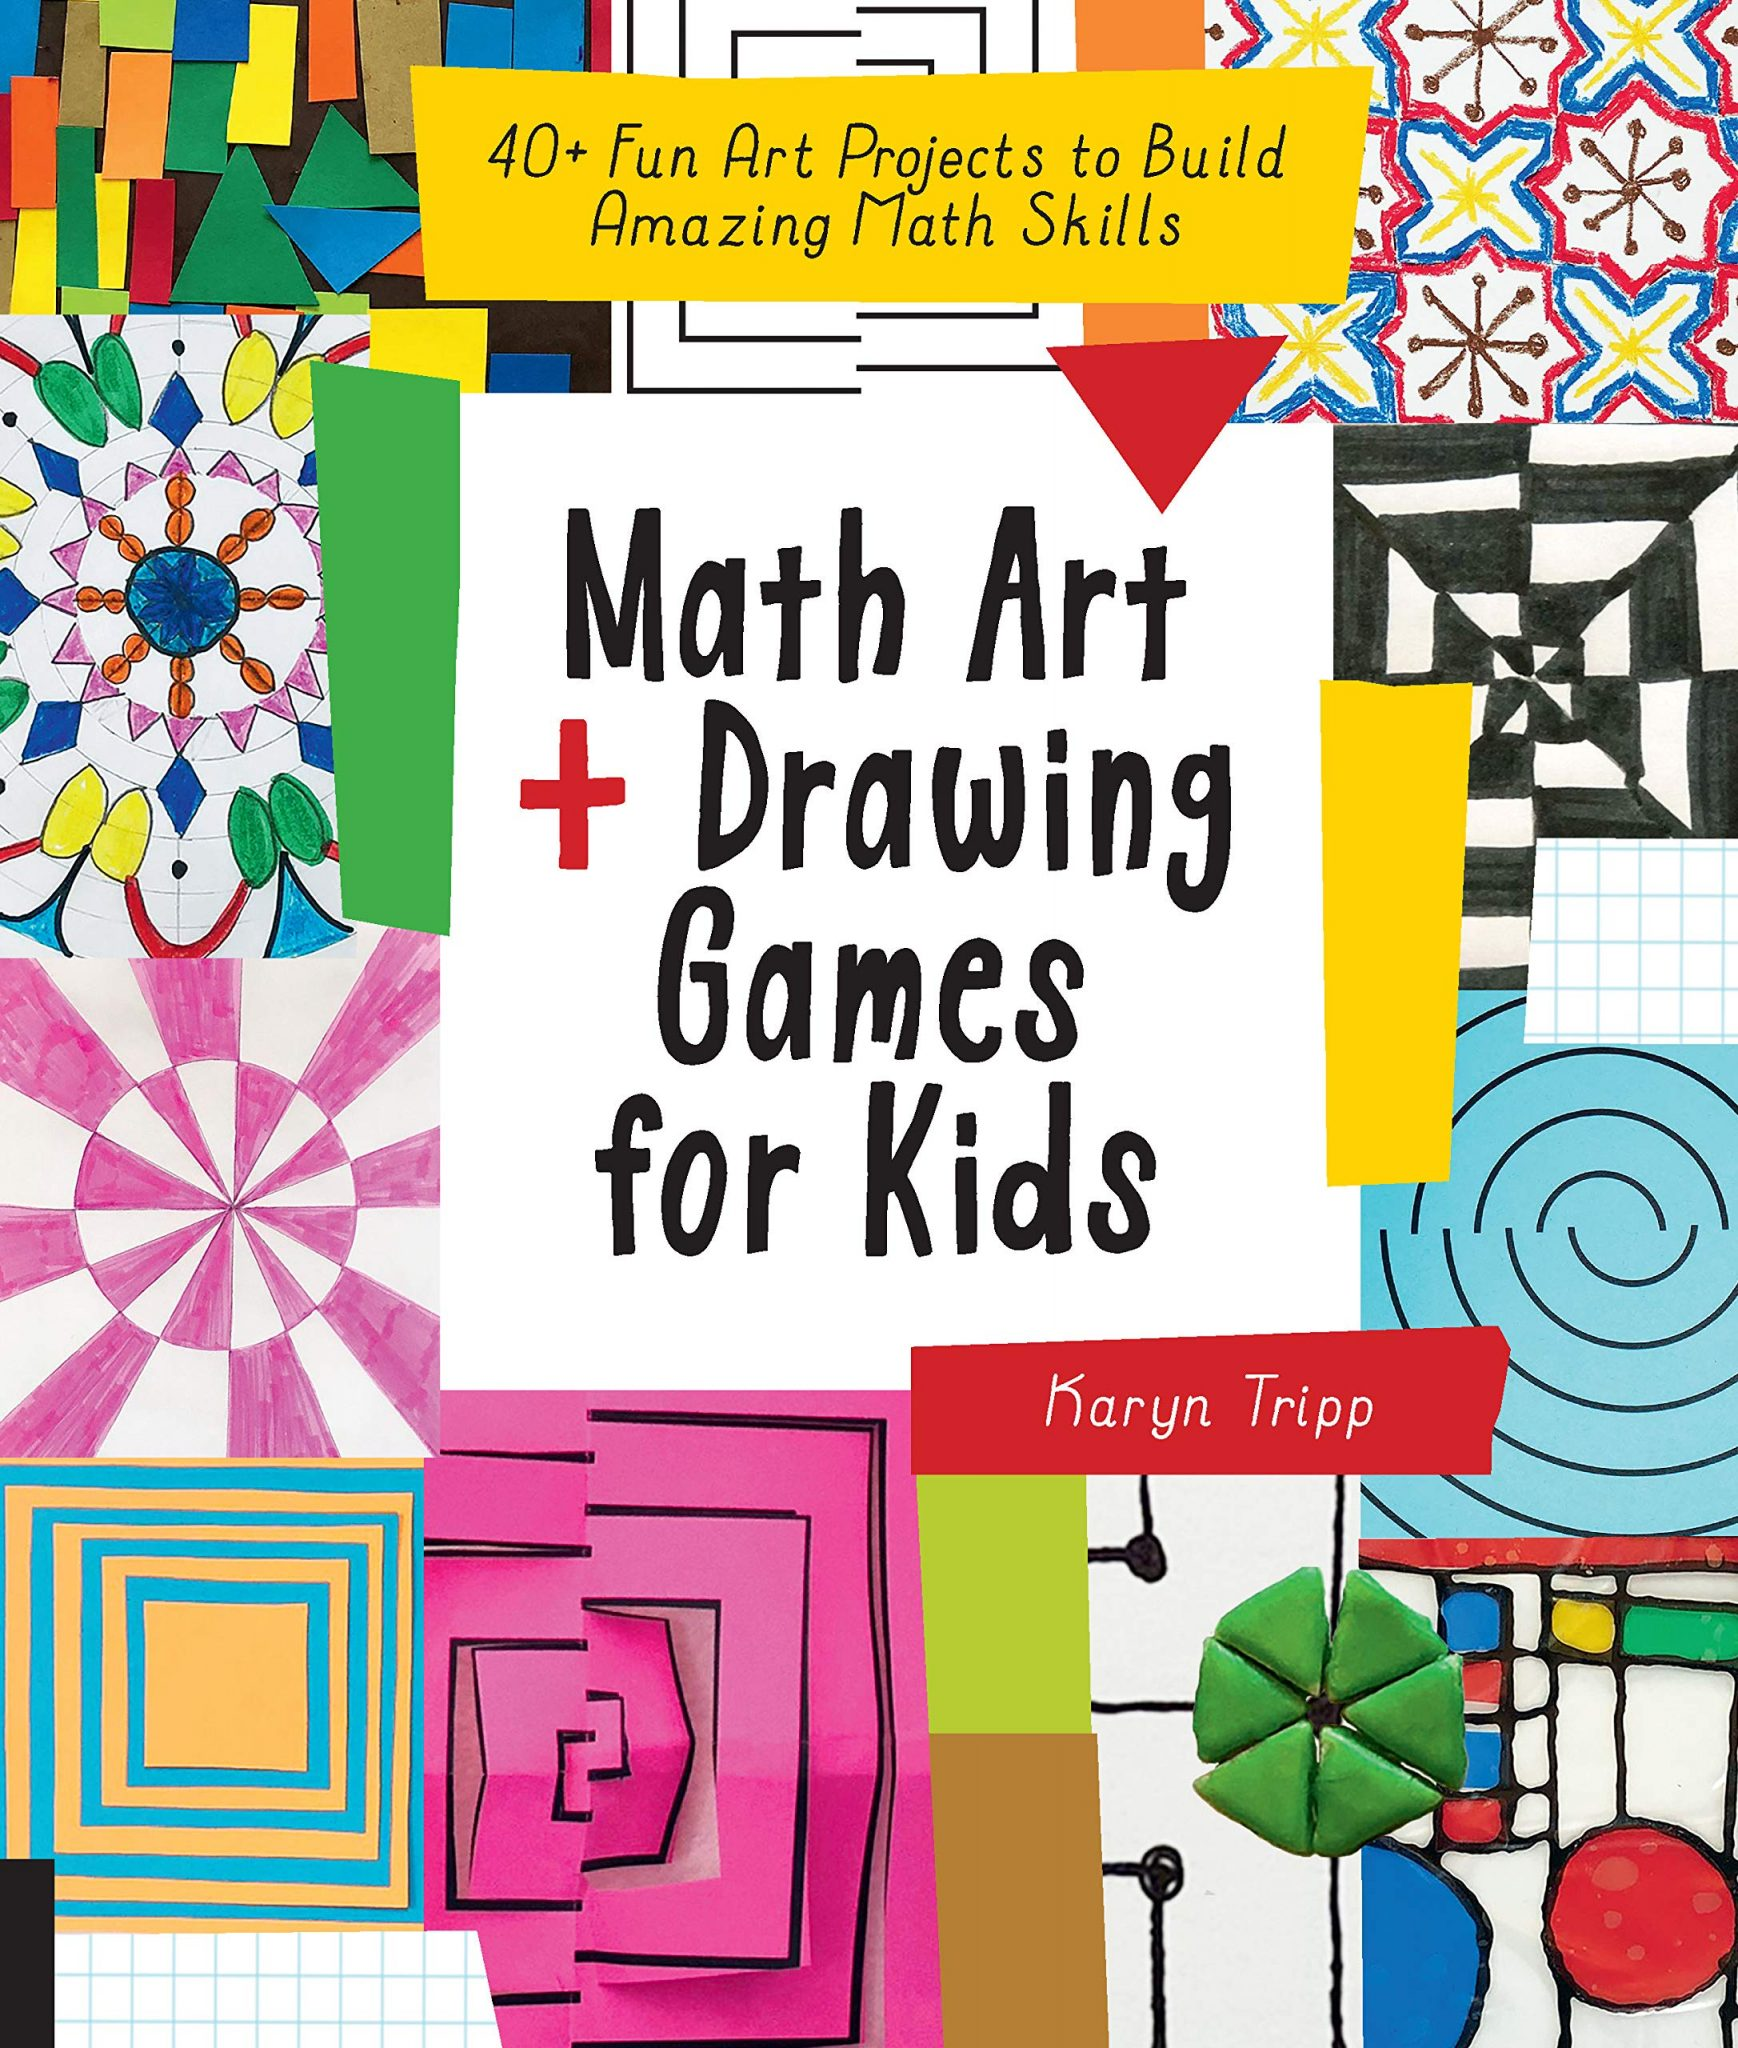 More fun with math art? Yes, please!